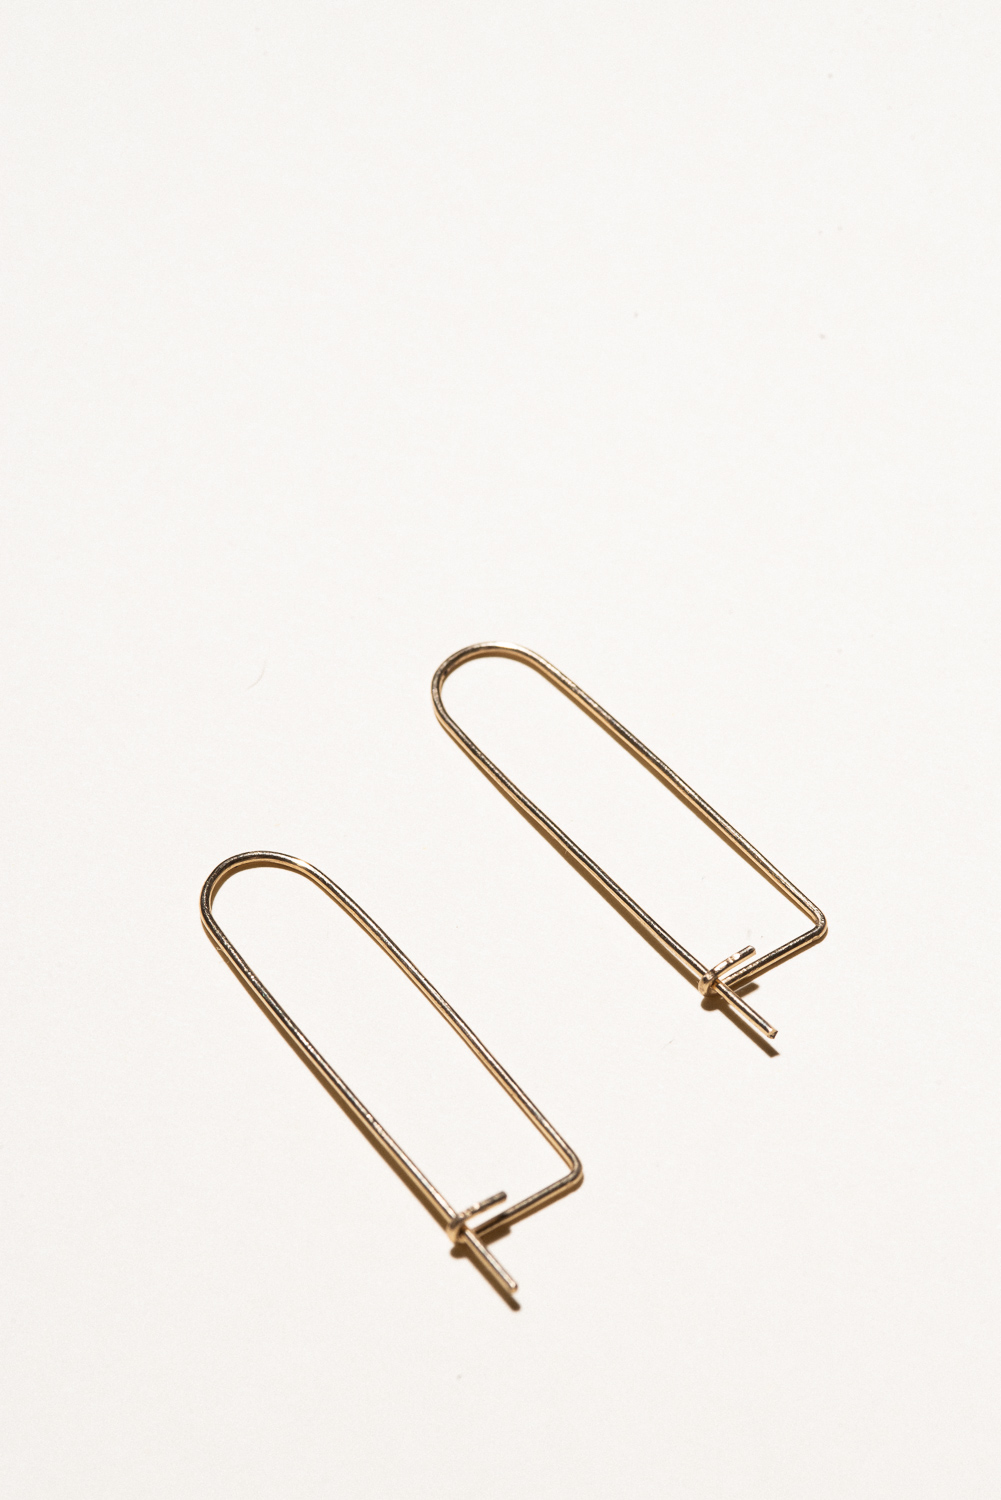 Gold Filled Clippie Earrings - 1.5in longGold Filled Hand Smithed$50